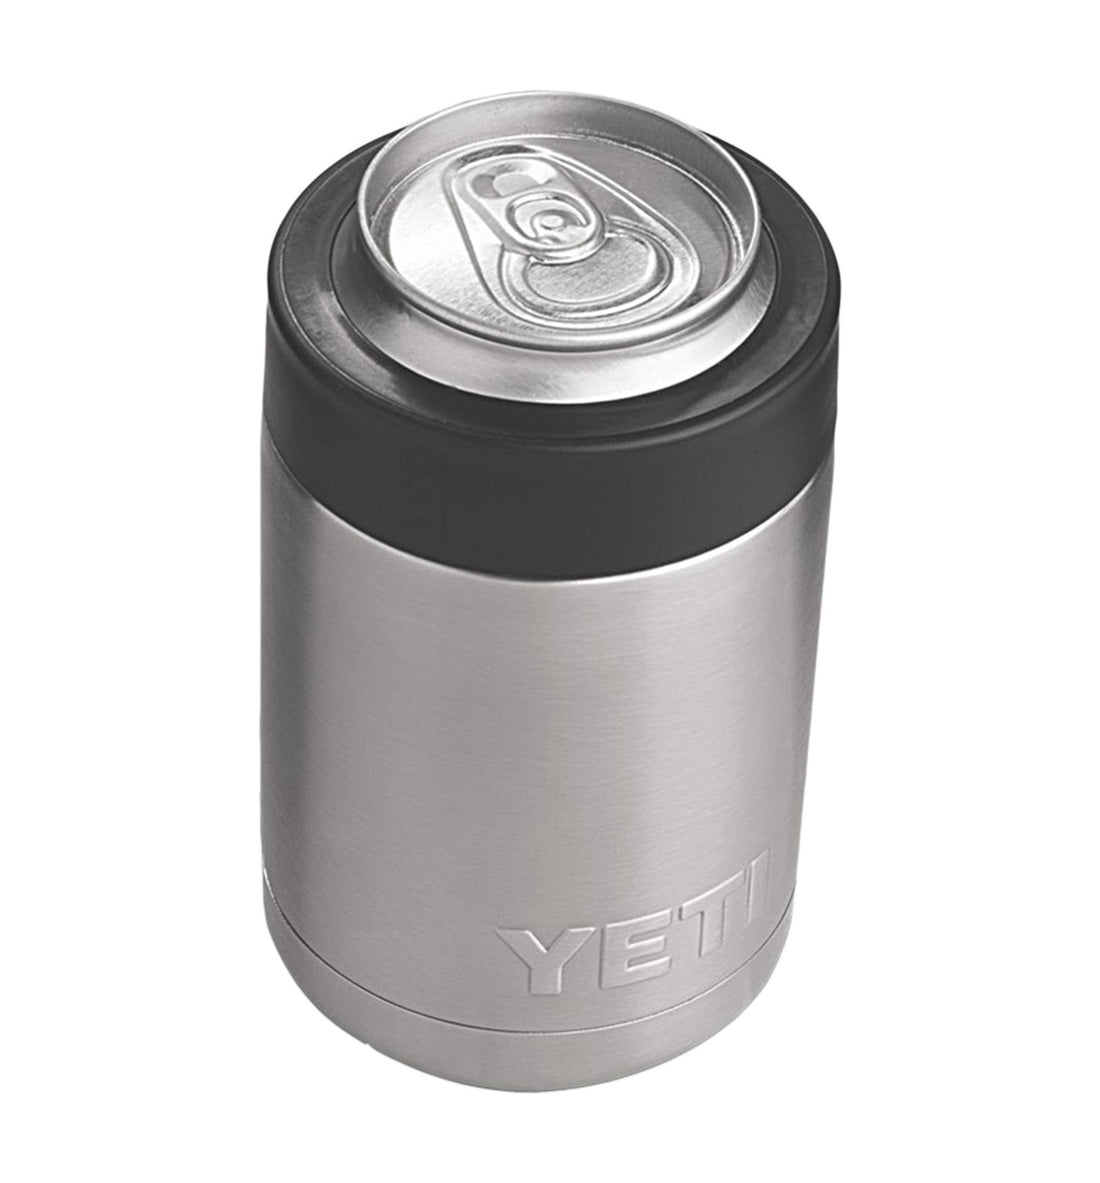 Yeti Rambler Colster - Outdoor Living/Travel - Iron and Resin